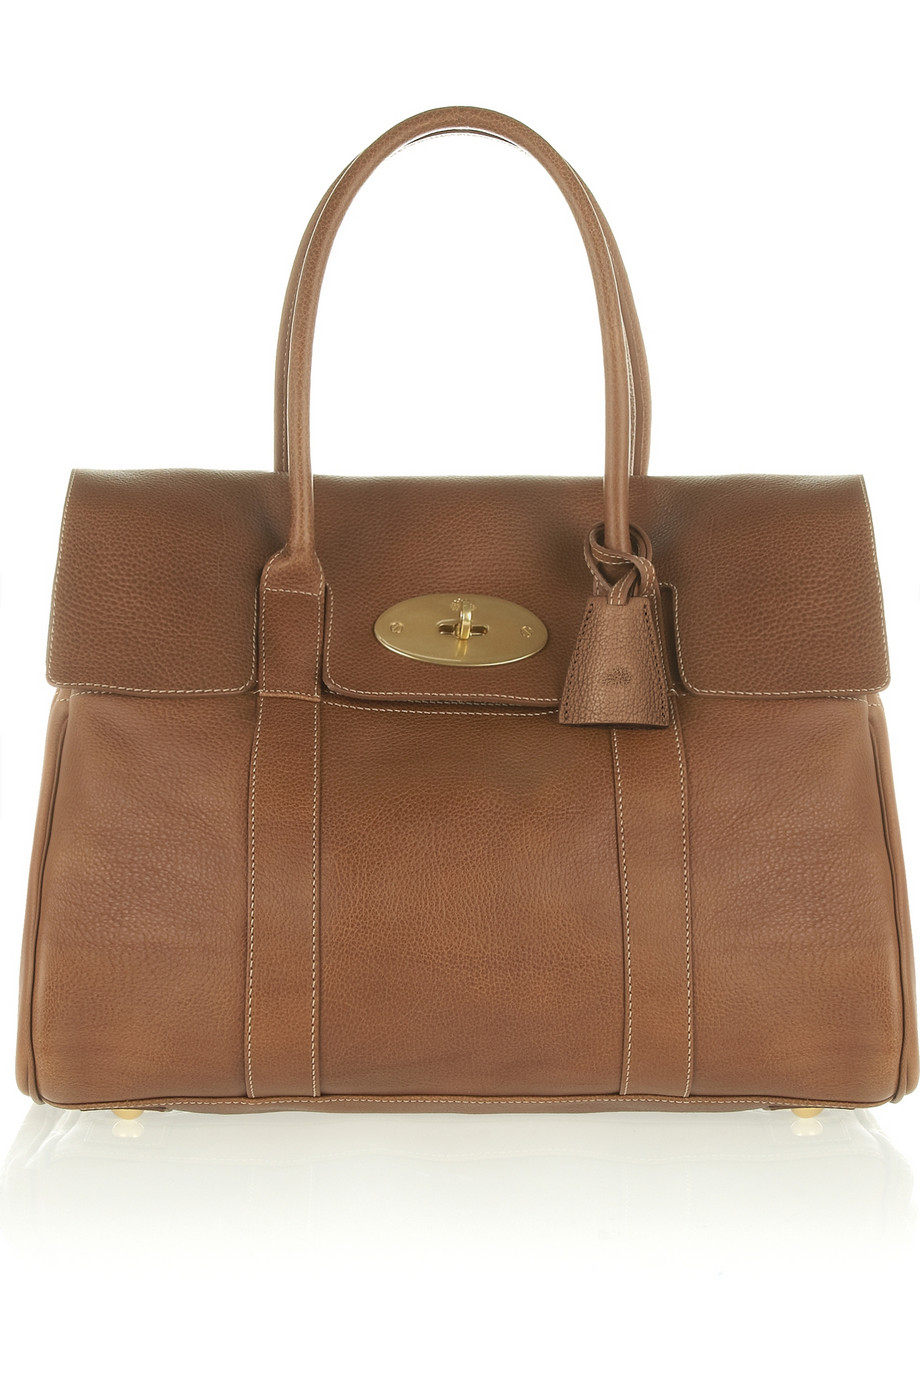 Mulberry the bayswater textured leather bag in brown lyst for The bayswater